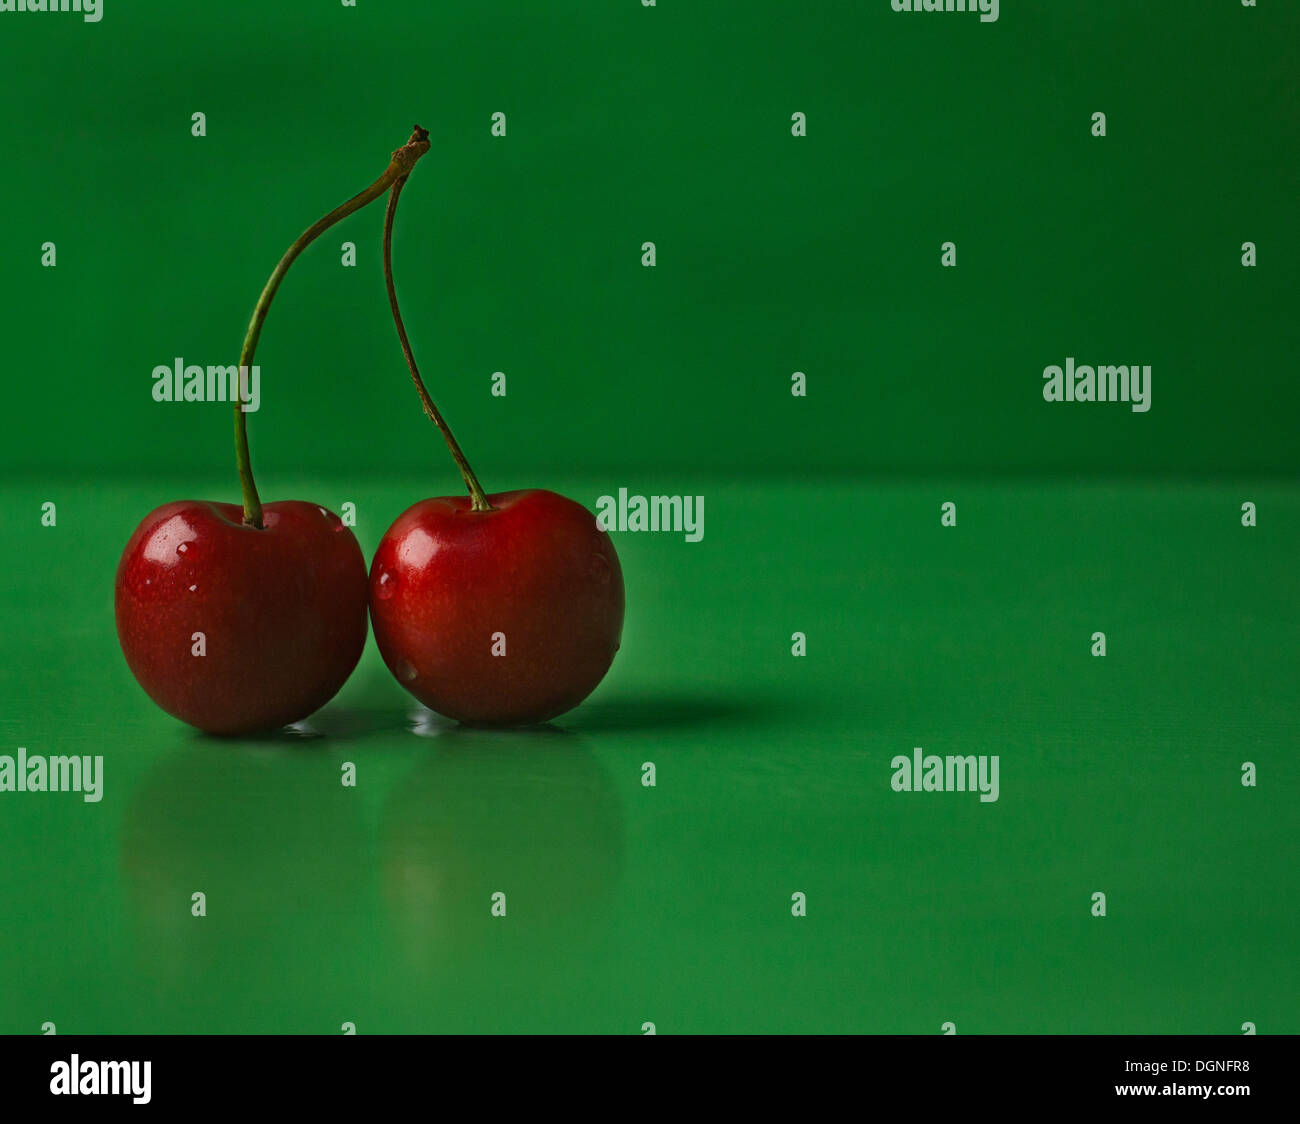 Red cherries on green background - Stock Image